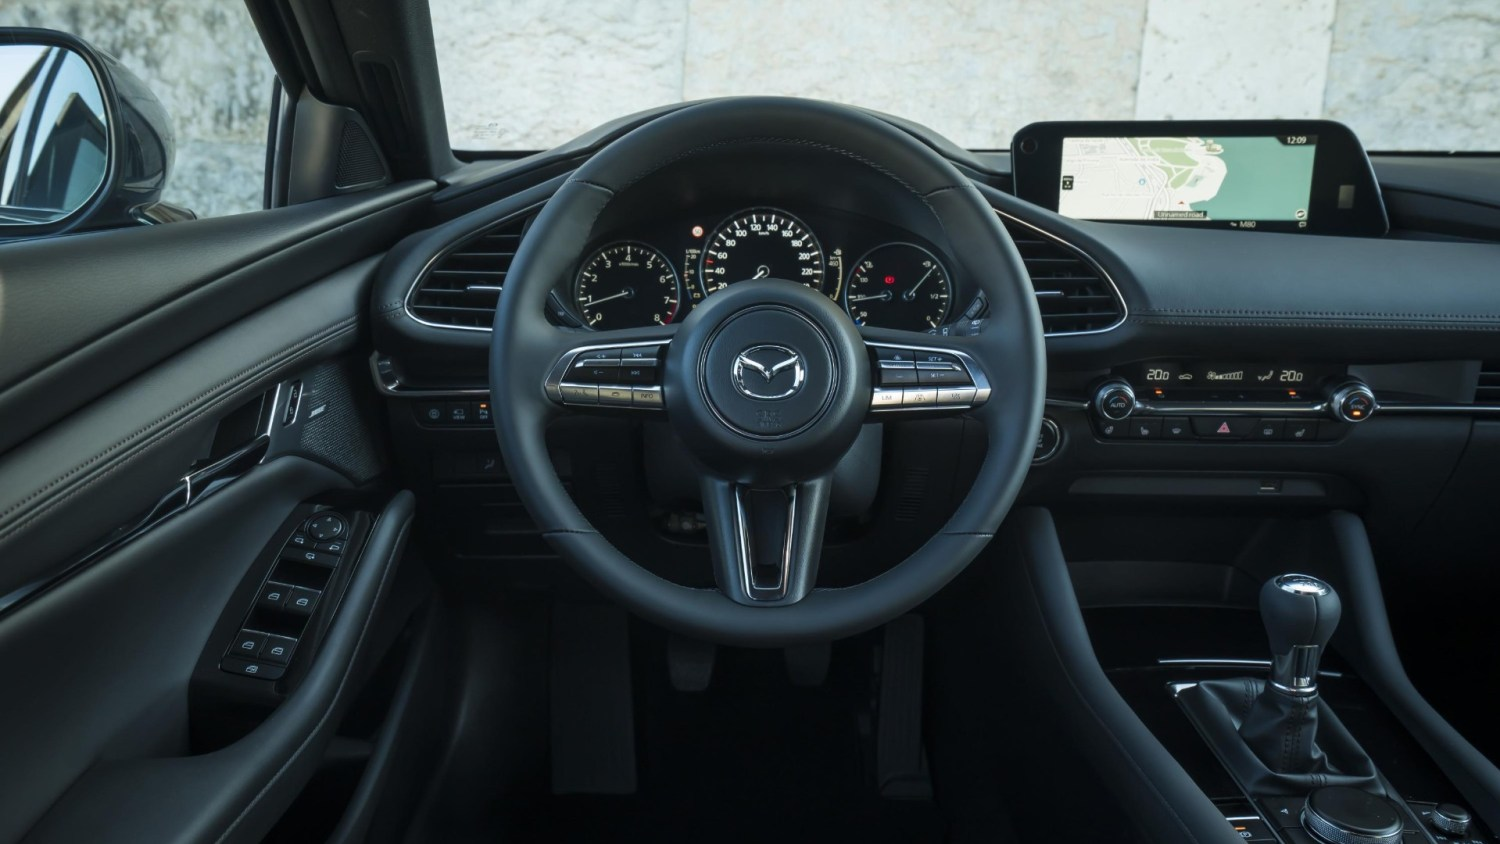 Mazda is getting rid of touch screens